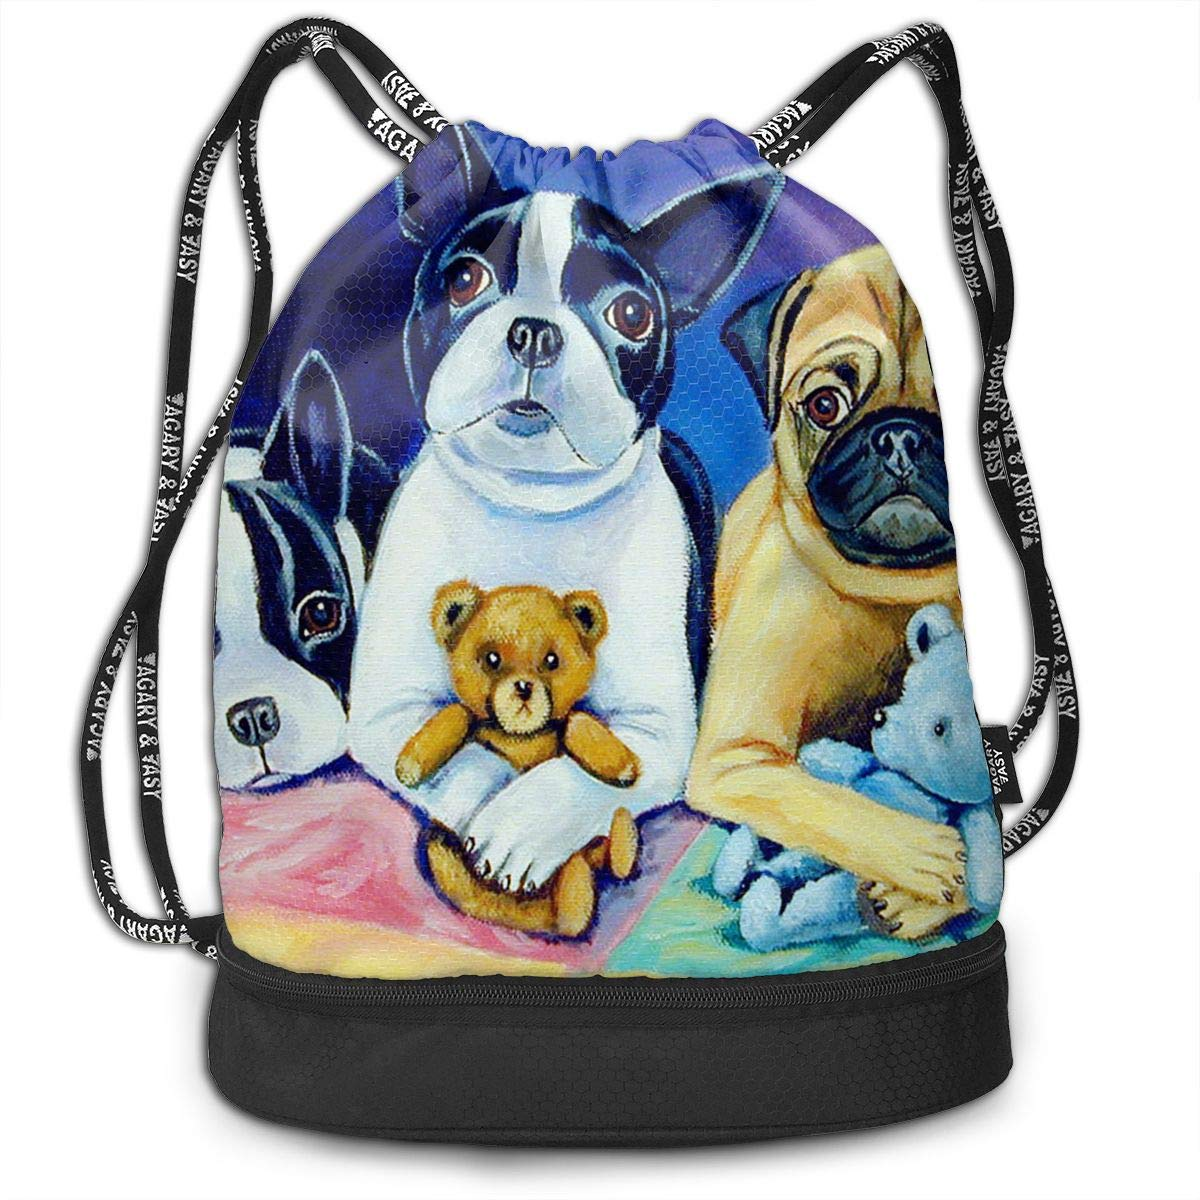 Gym Travel Beach Sporting Verna Eipstein Boston Terrier and Pug Puppies Waterproof Lightweight Sports Backpack for Swimming Hiking Shopping Camping